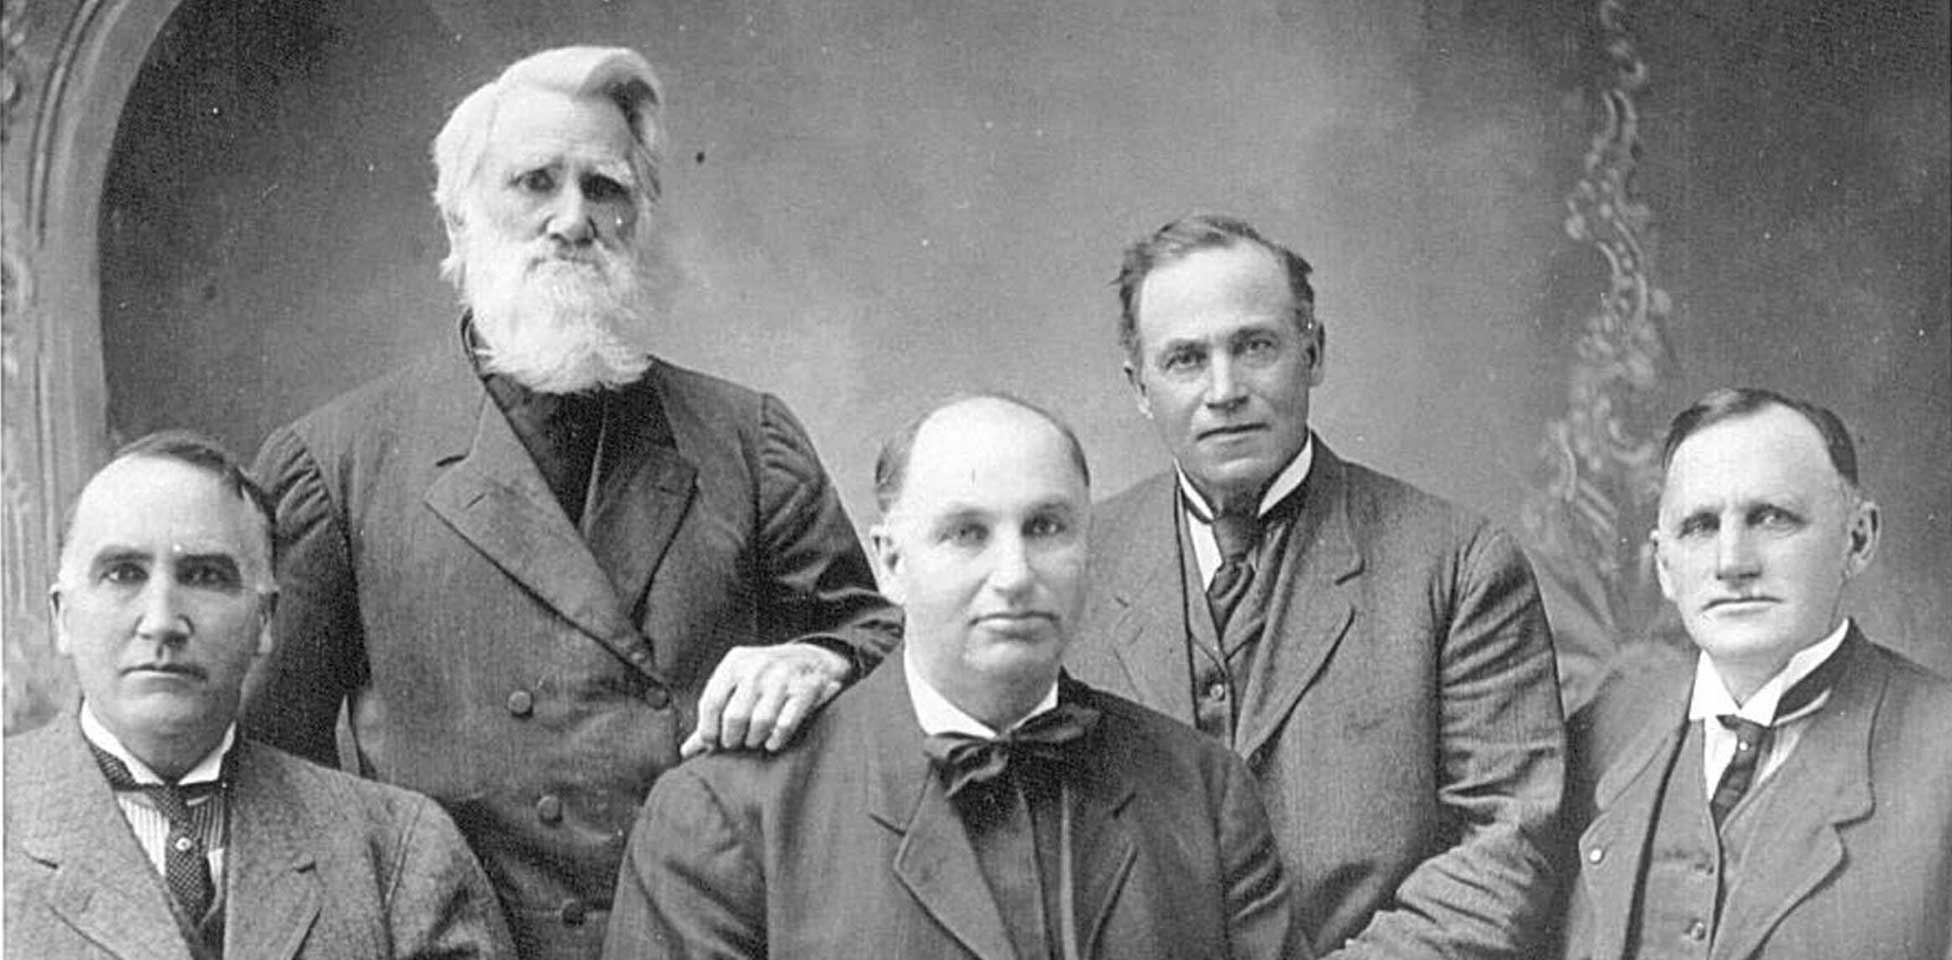 Historical photo of the Case founding members